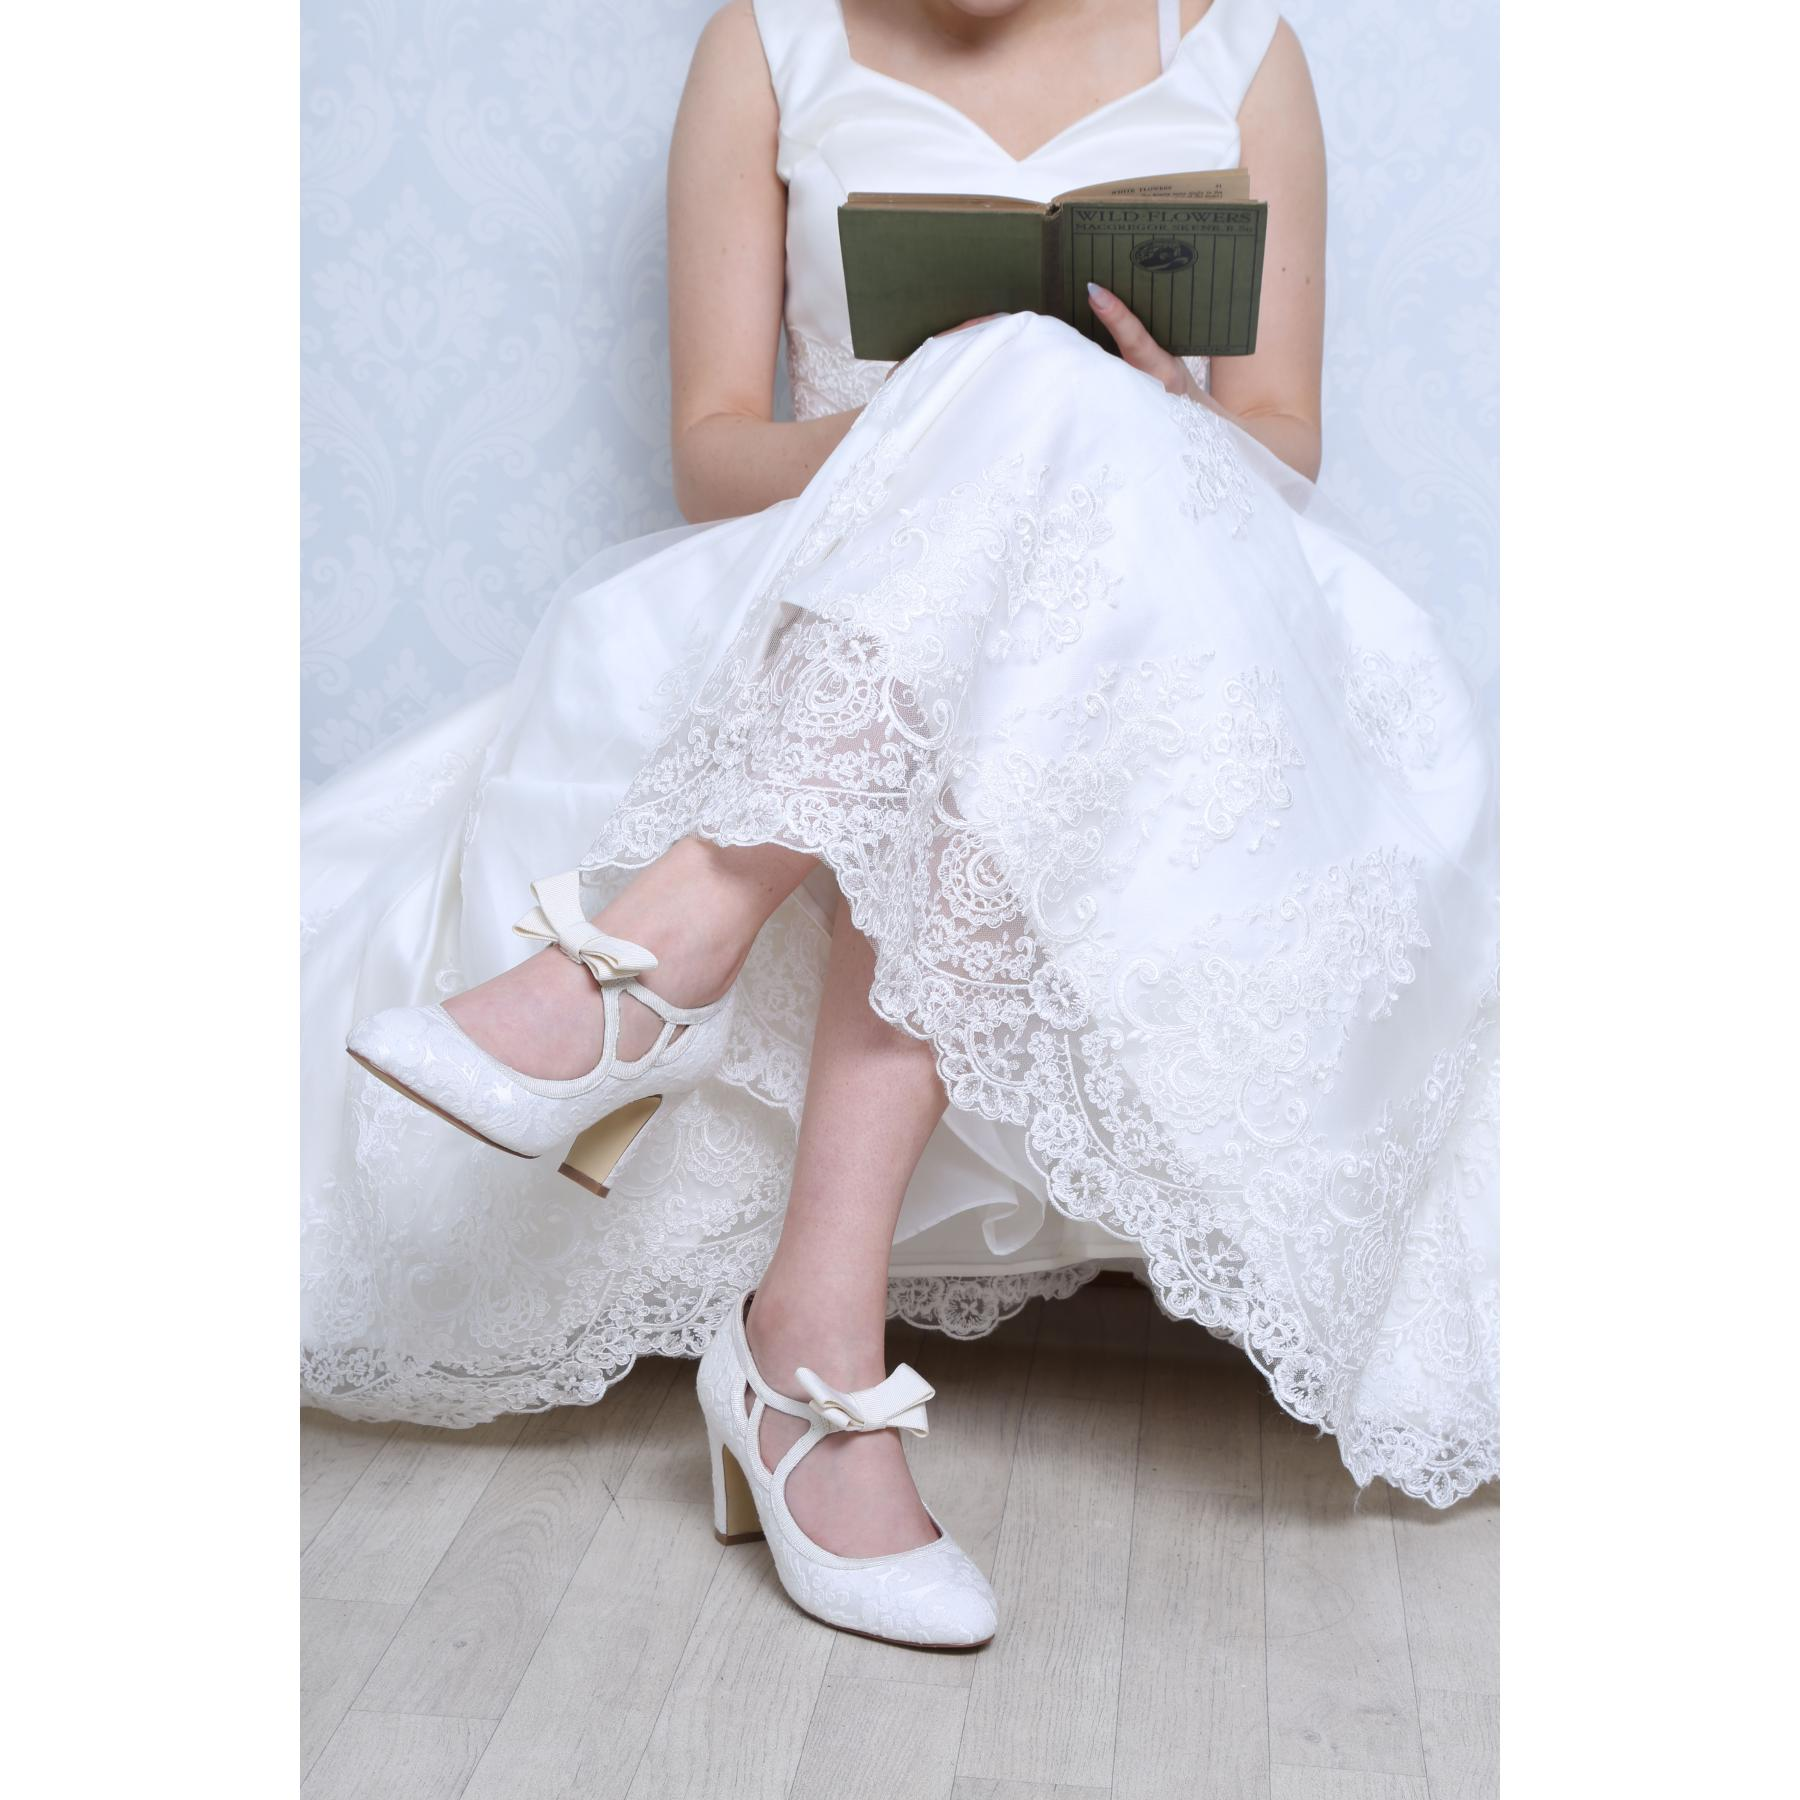 Perfect Bridal Mandy Shoes